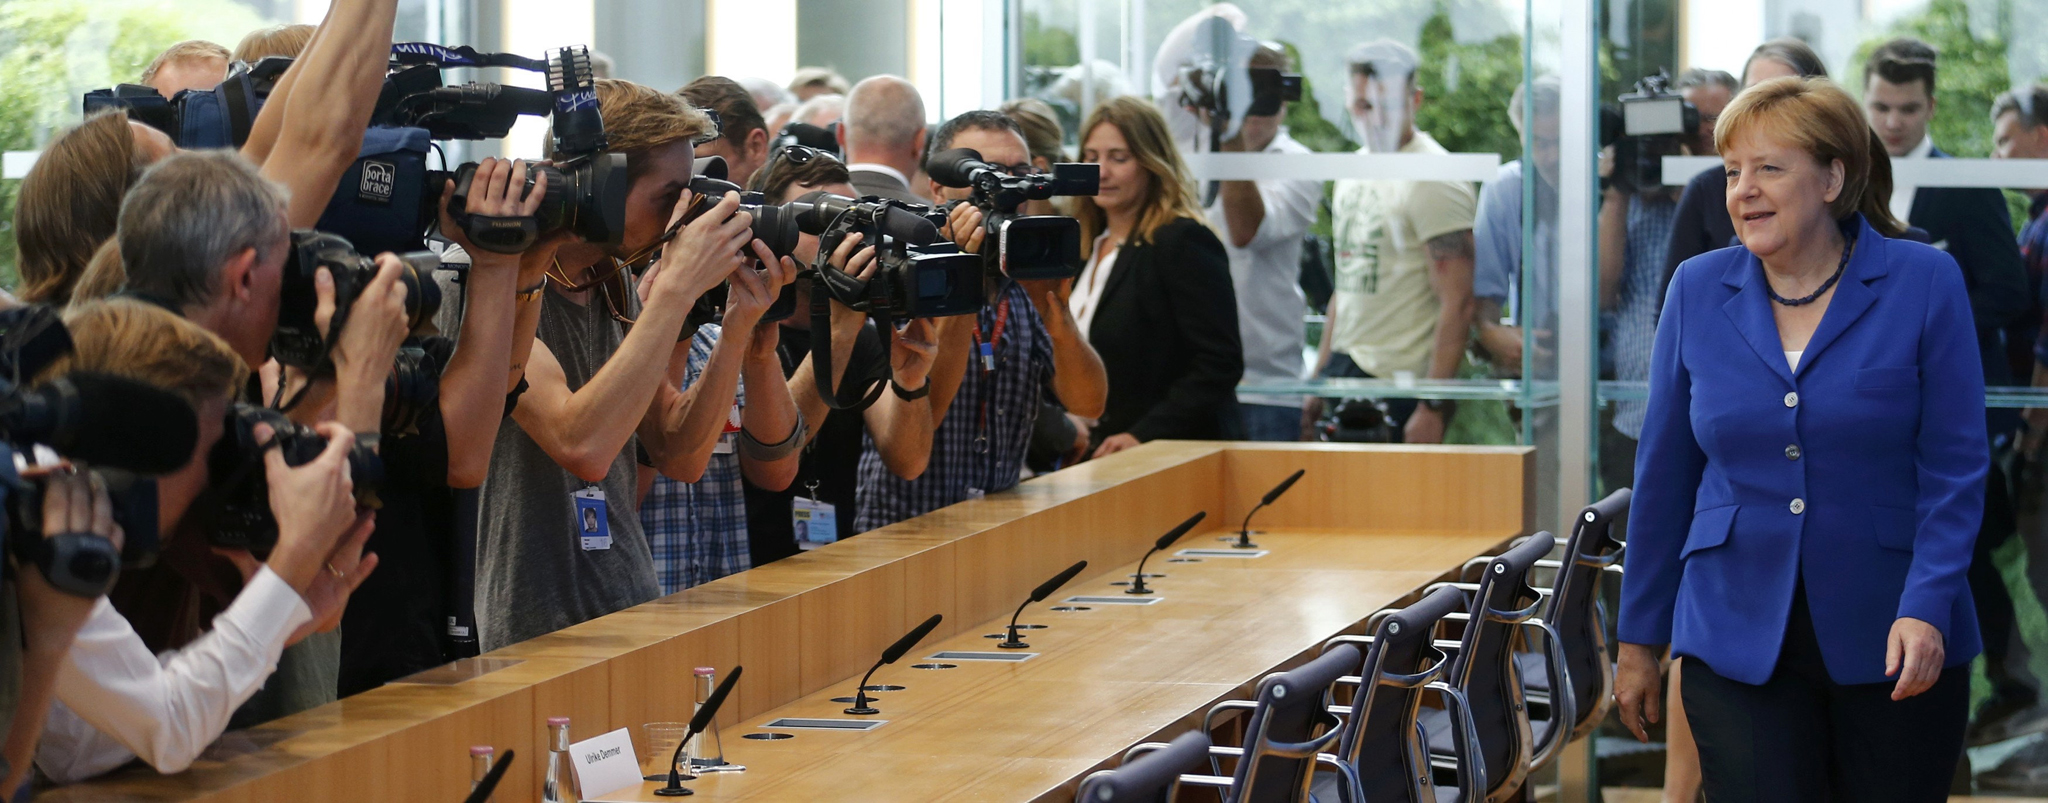 German Chancellor Angela Merkel arrives for a news conference in Berlin, Germany, July 28, 2016.